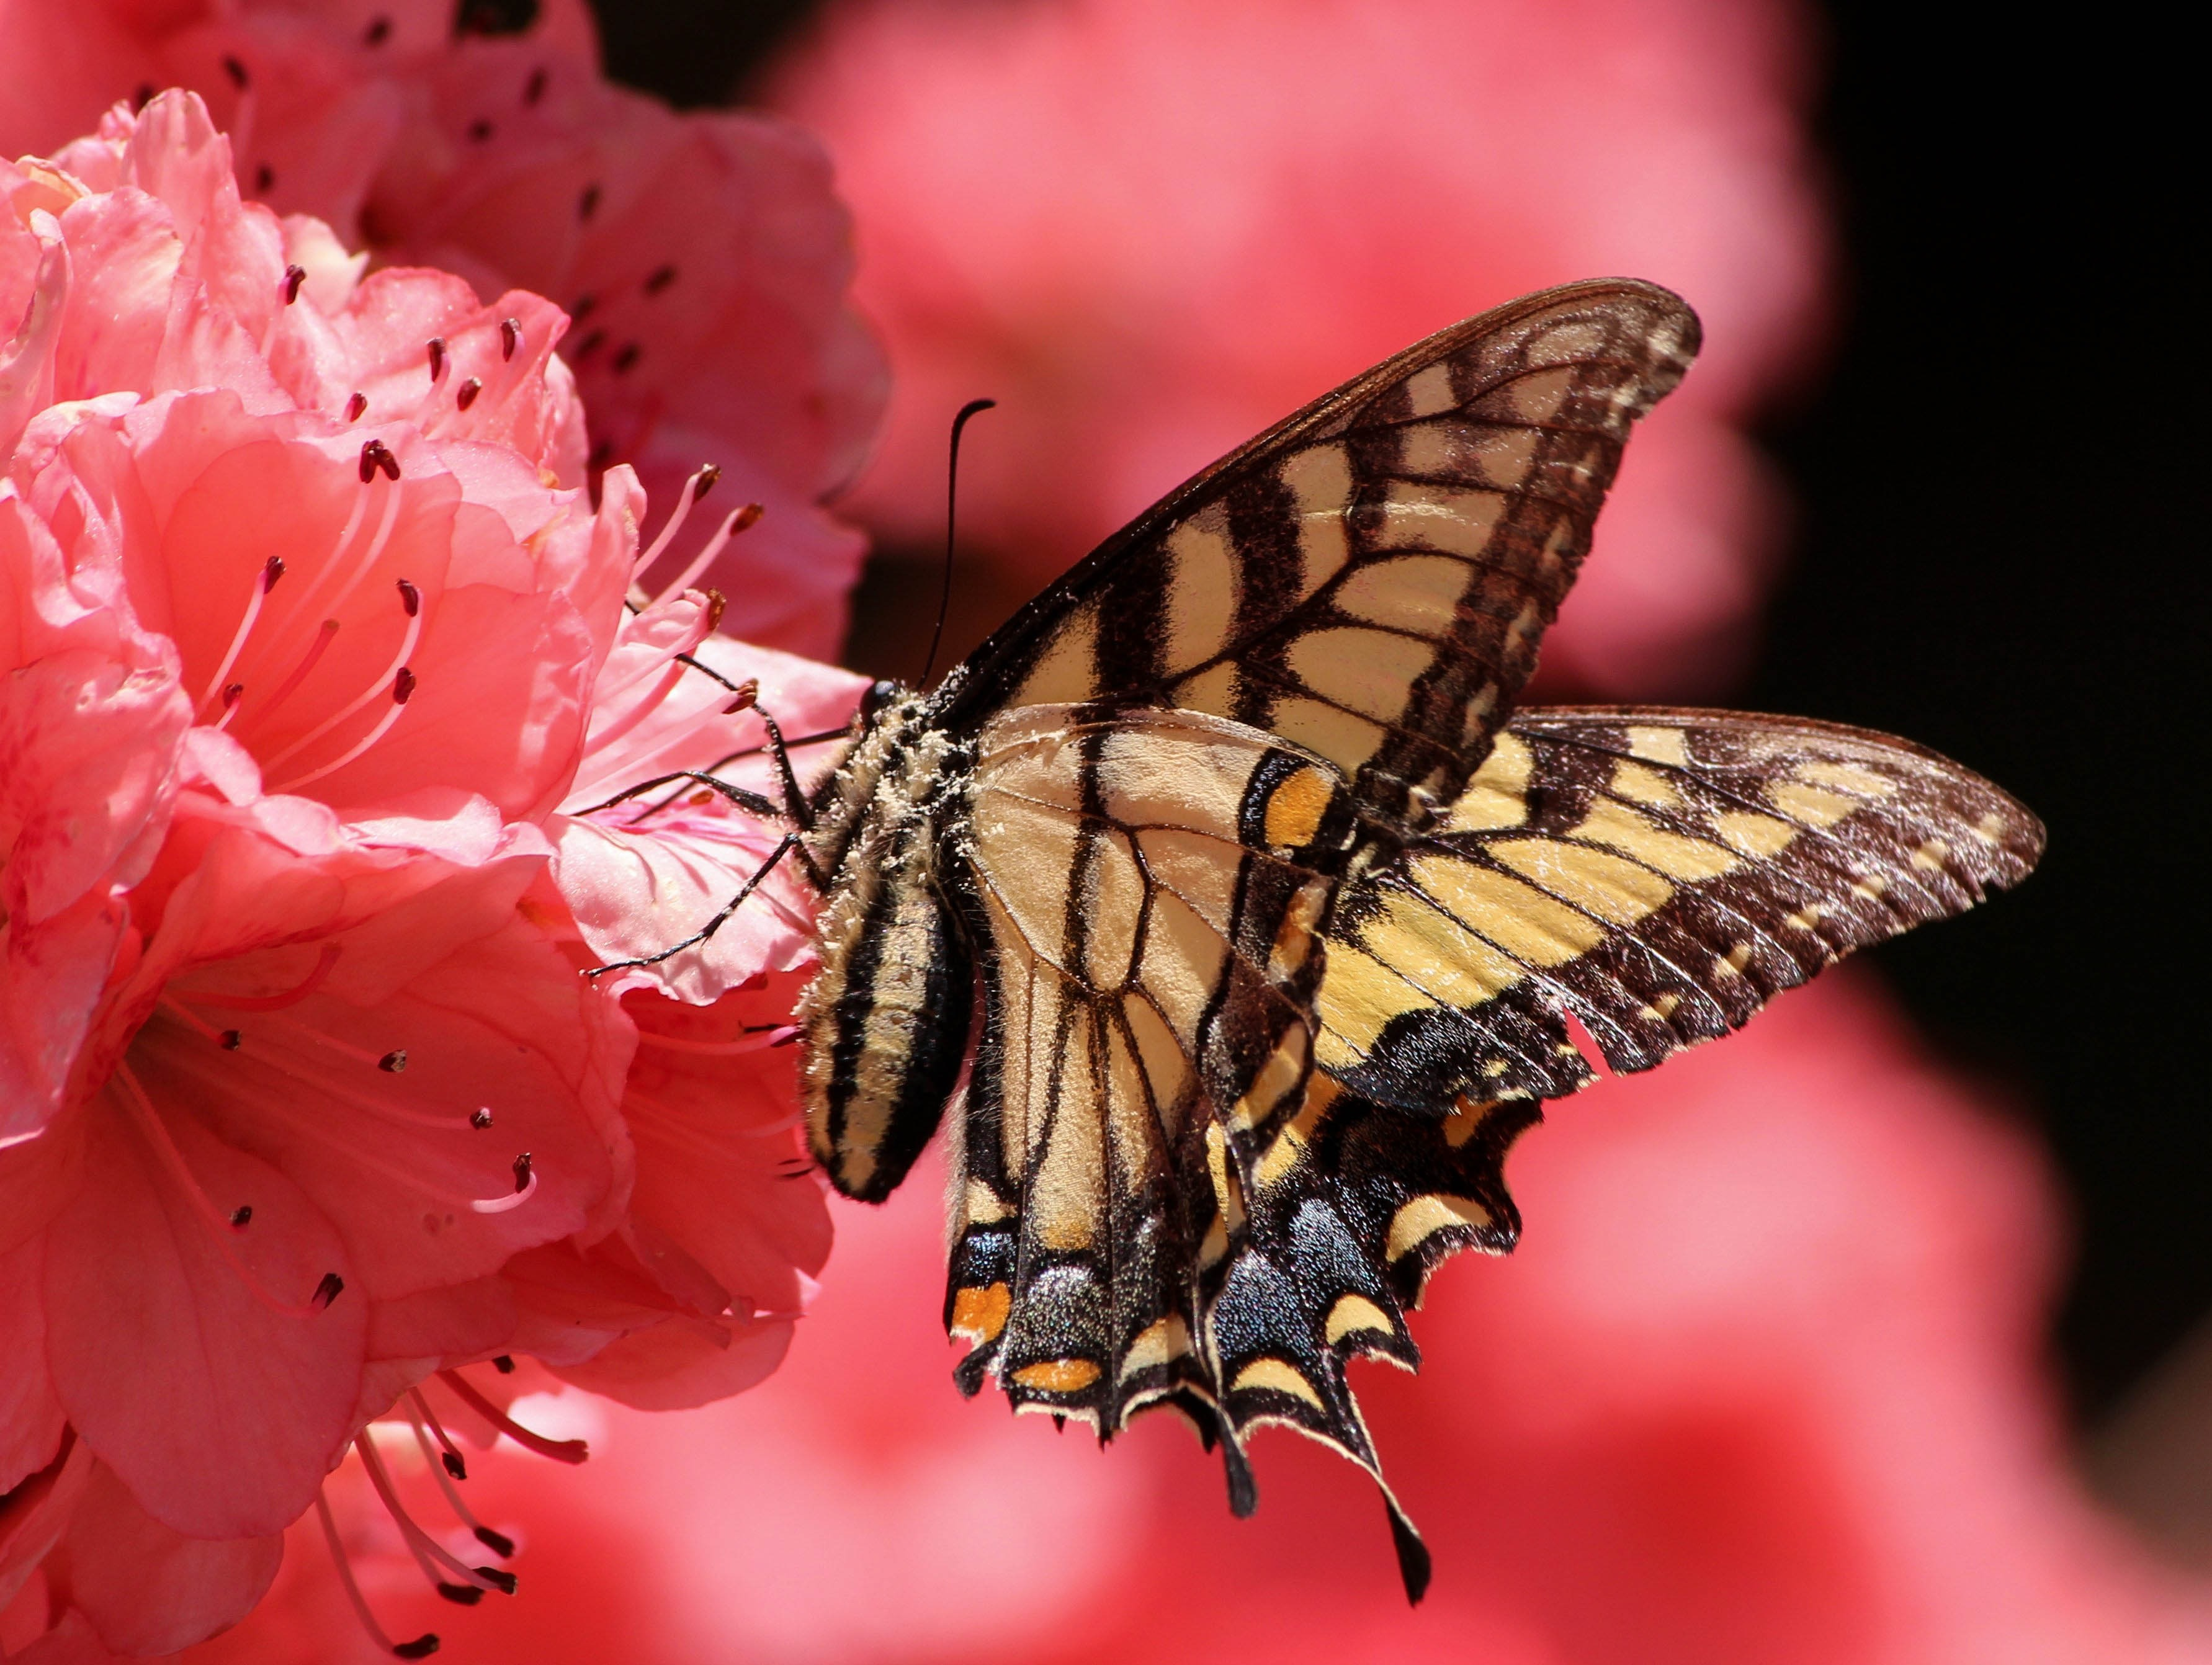 butterfly-flying-insect-old-world-swallowtail-pollen-70352.jpeg (3565×2684)